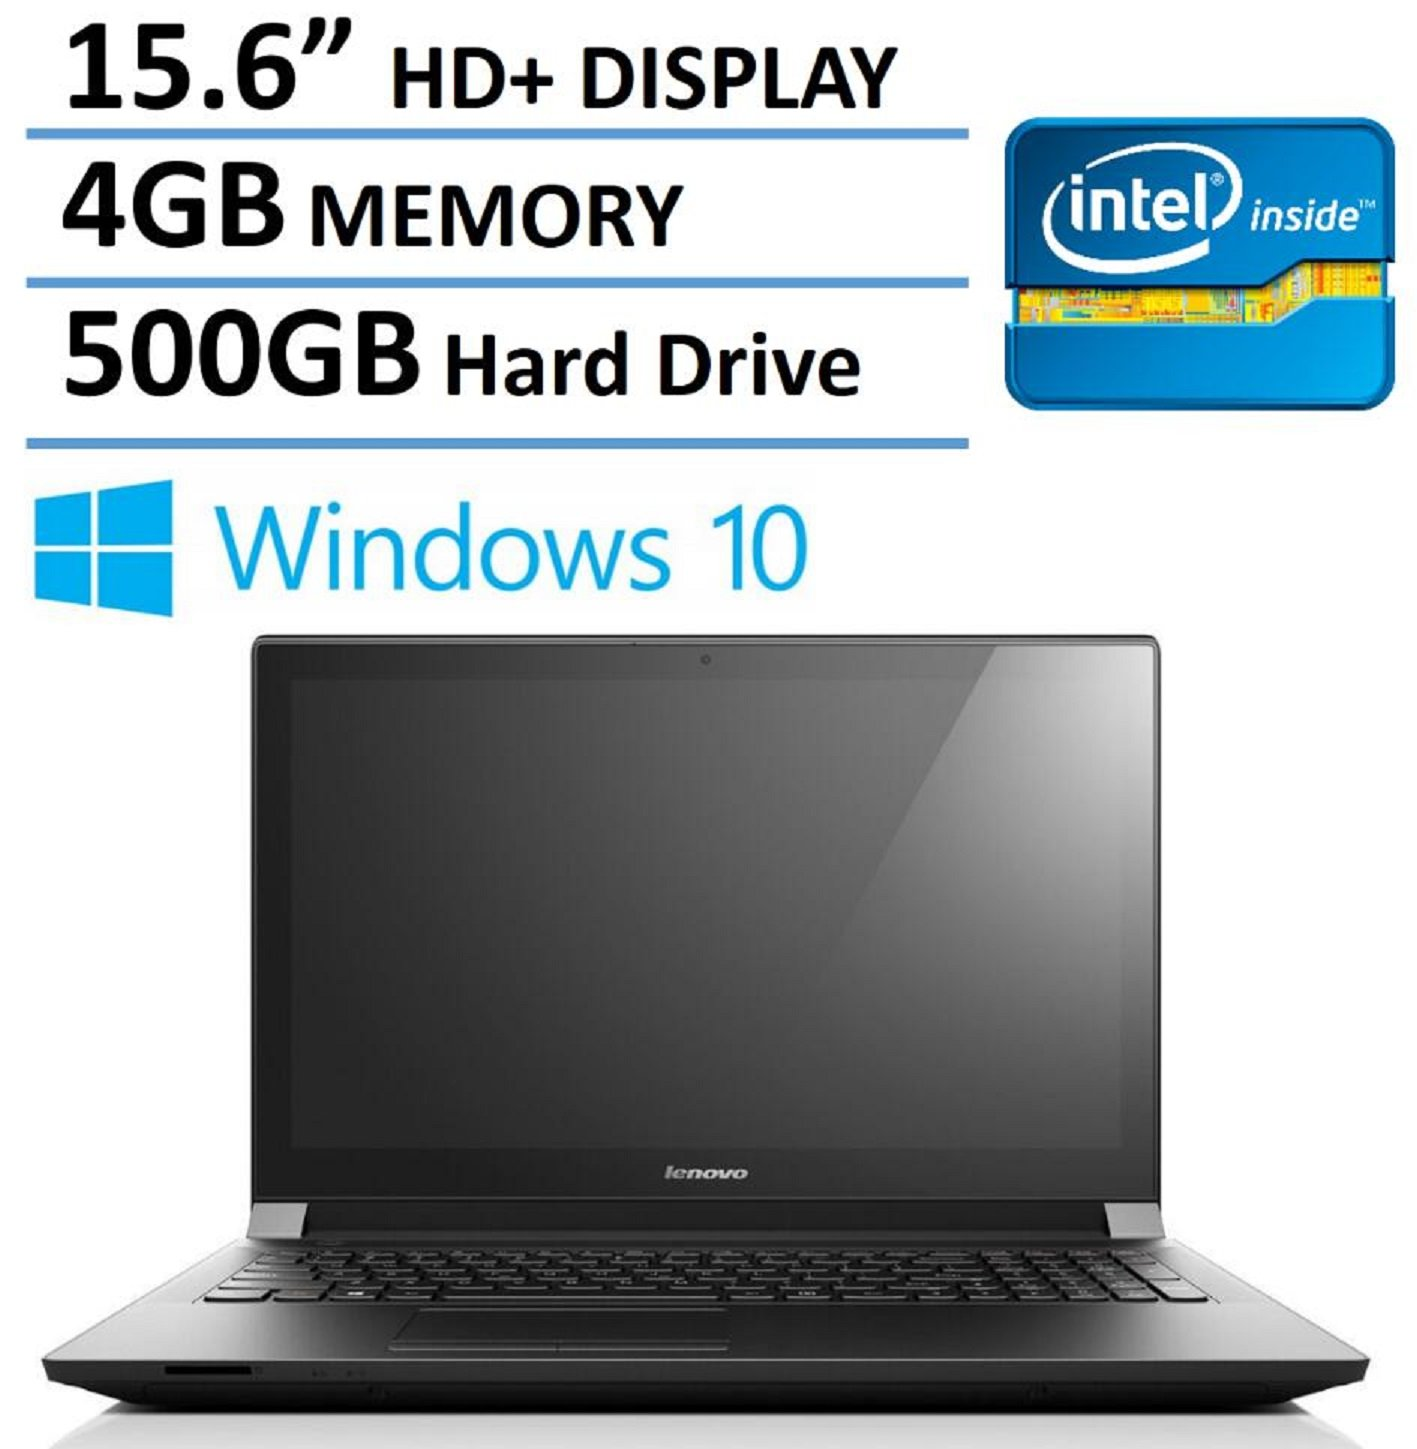 2016 NEW Edition Lenovo 15 Premium Laptop, Intel Dual-Core Processor, 4GB Memory, 500GB Hard Drive, 15.6-inch HD LED Backlit Display (1366 x 768), HDMI, Bluetooth, Webcam, Windows 10